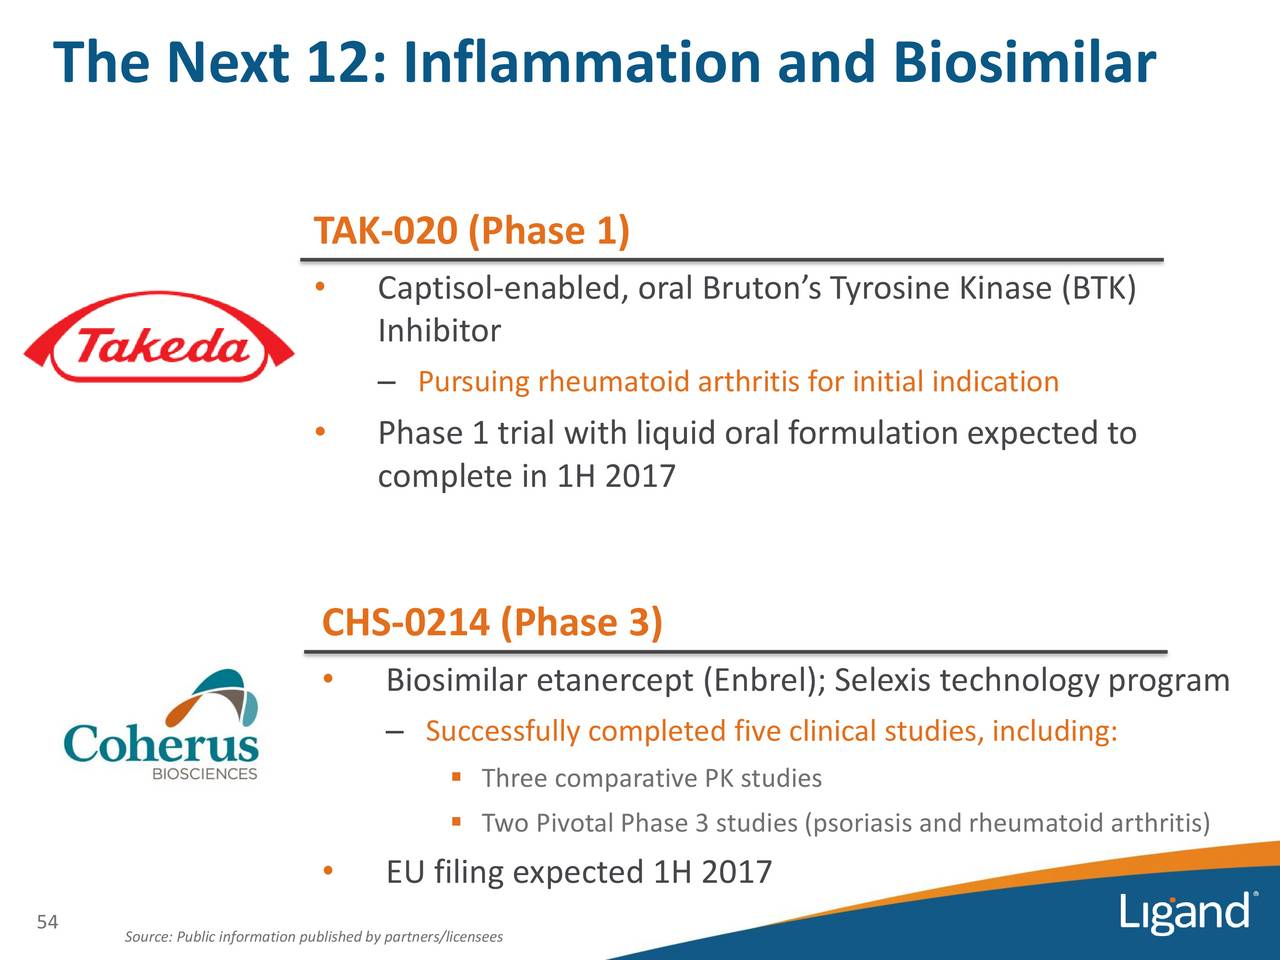 ligand phamaceuticals View the latest lgnd stock price with barron's including historical share prices, analysis, earnings, cash flow and market valuation for ligand pharmaceuticals inc.